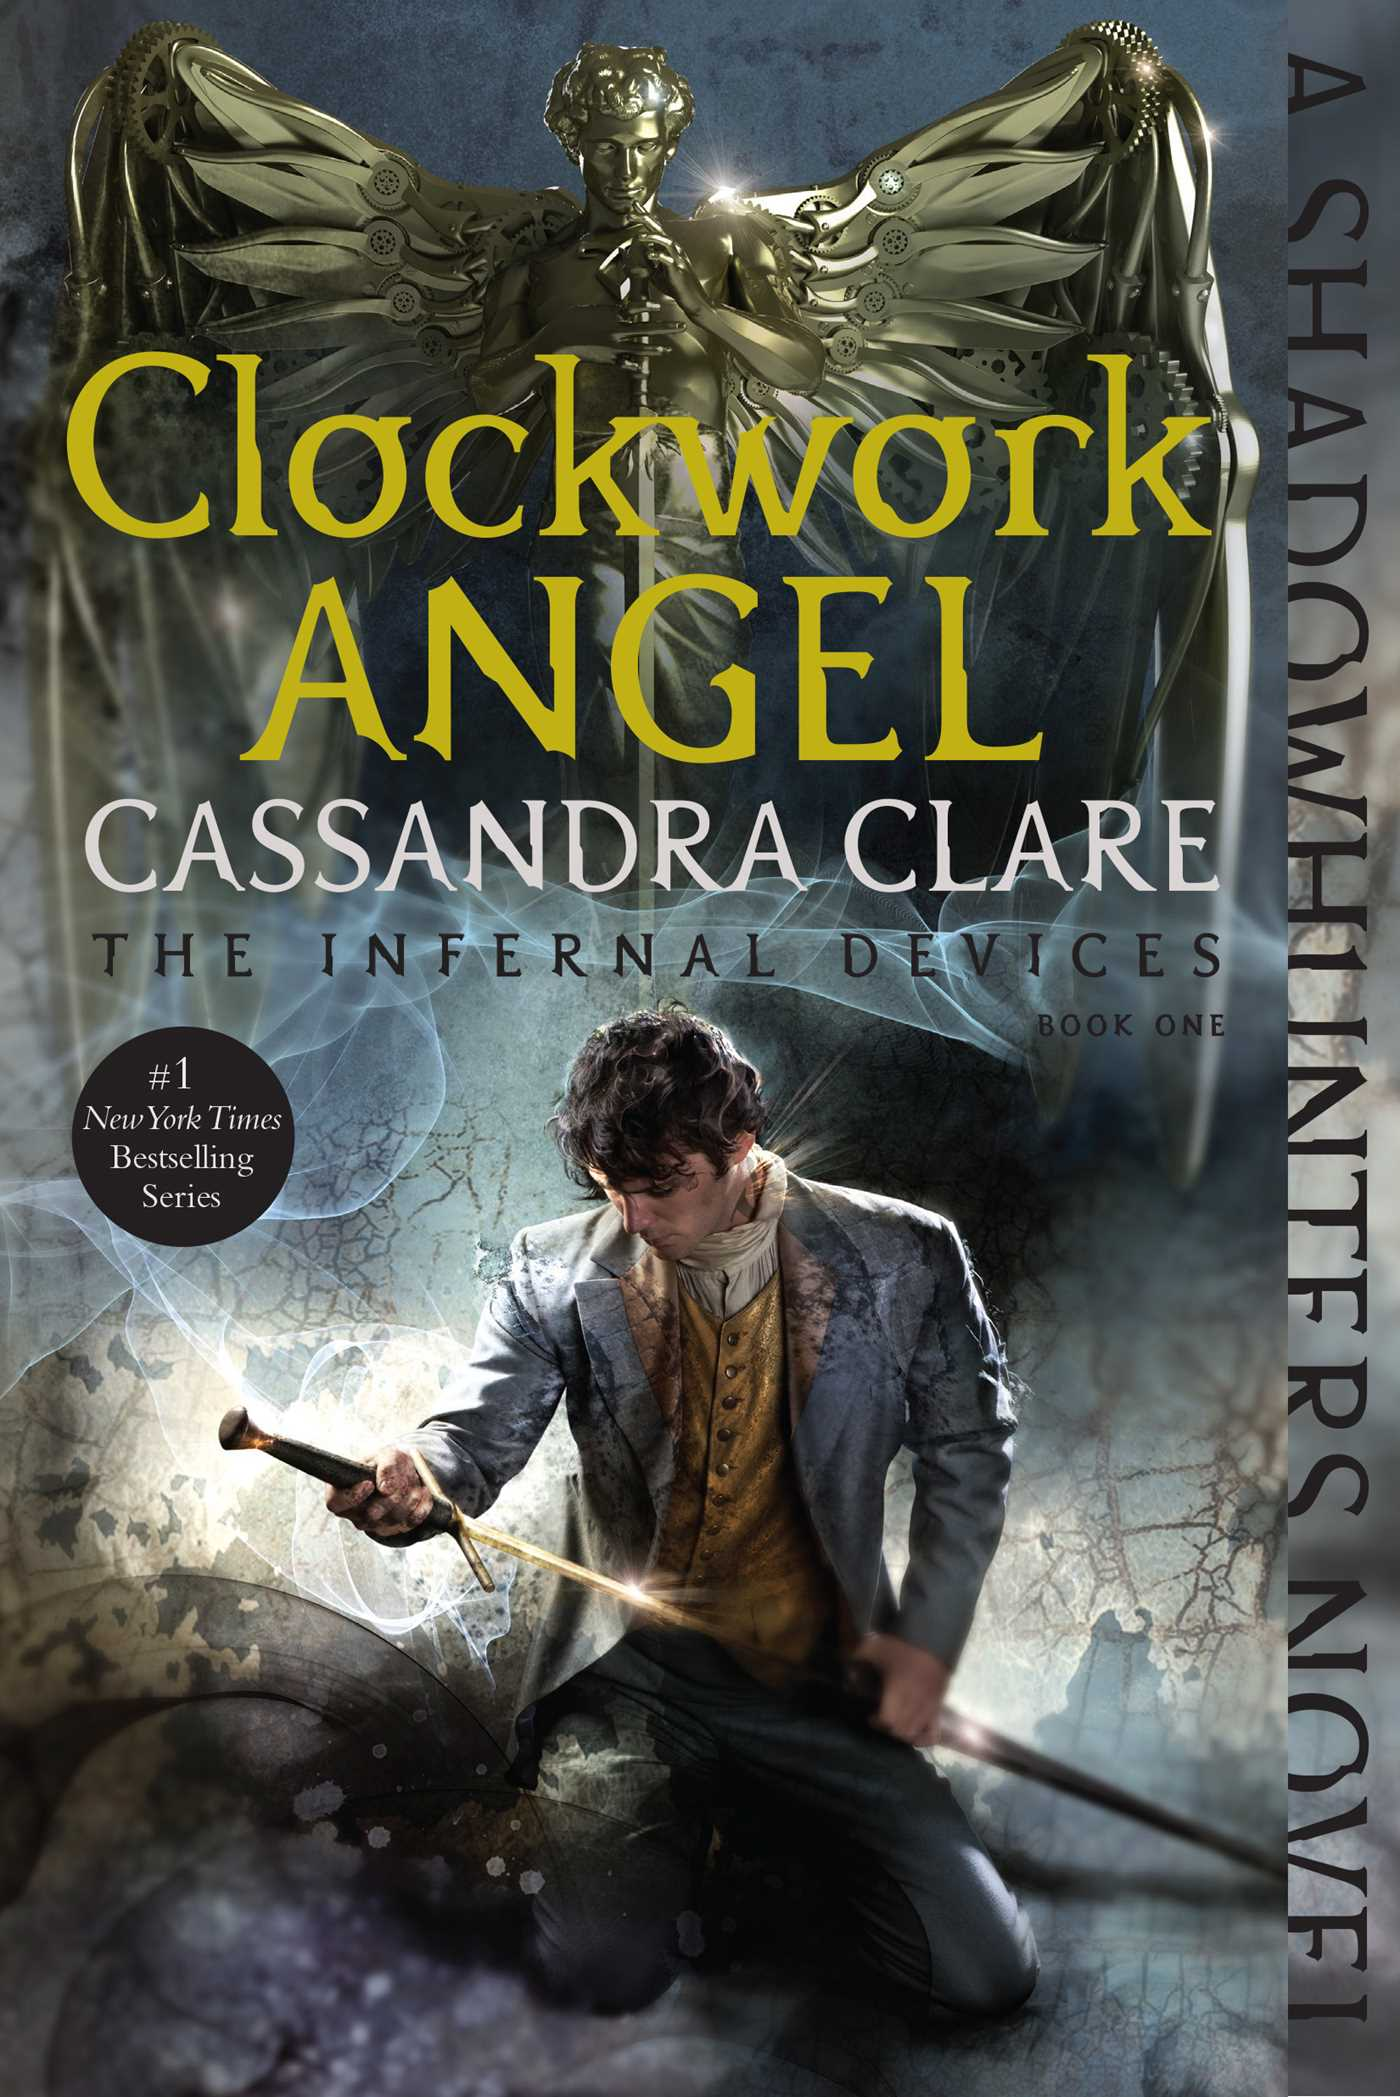 Clockwork Angel cover image